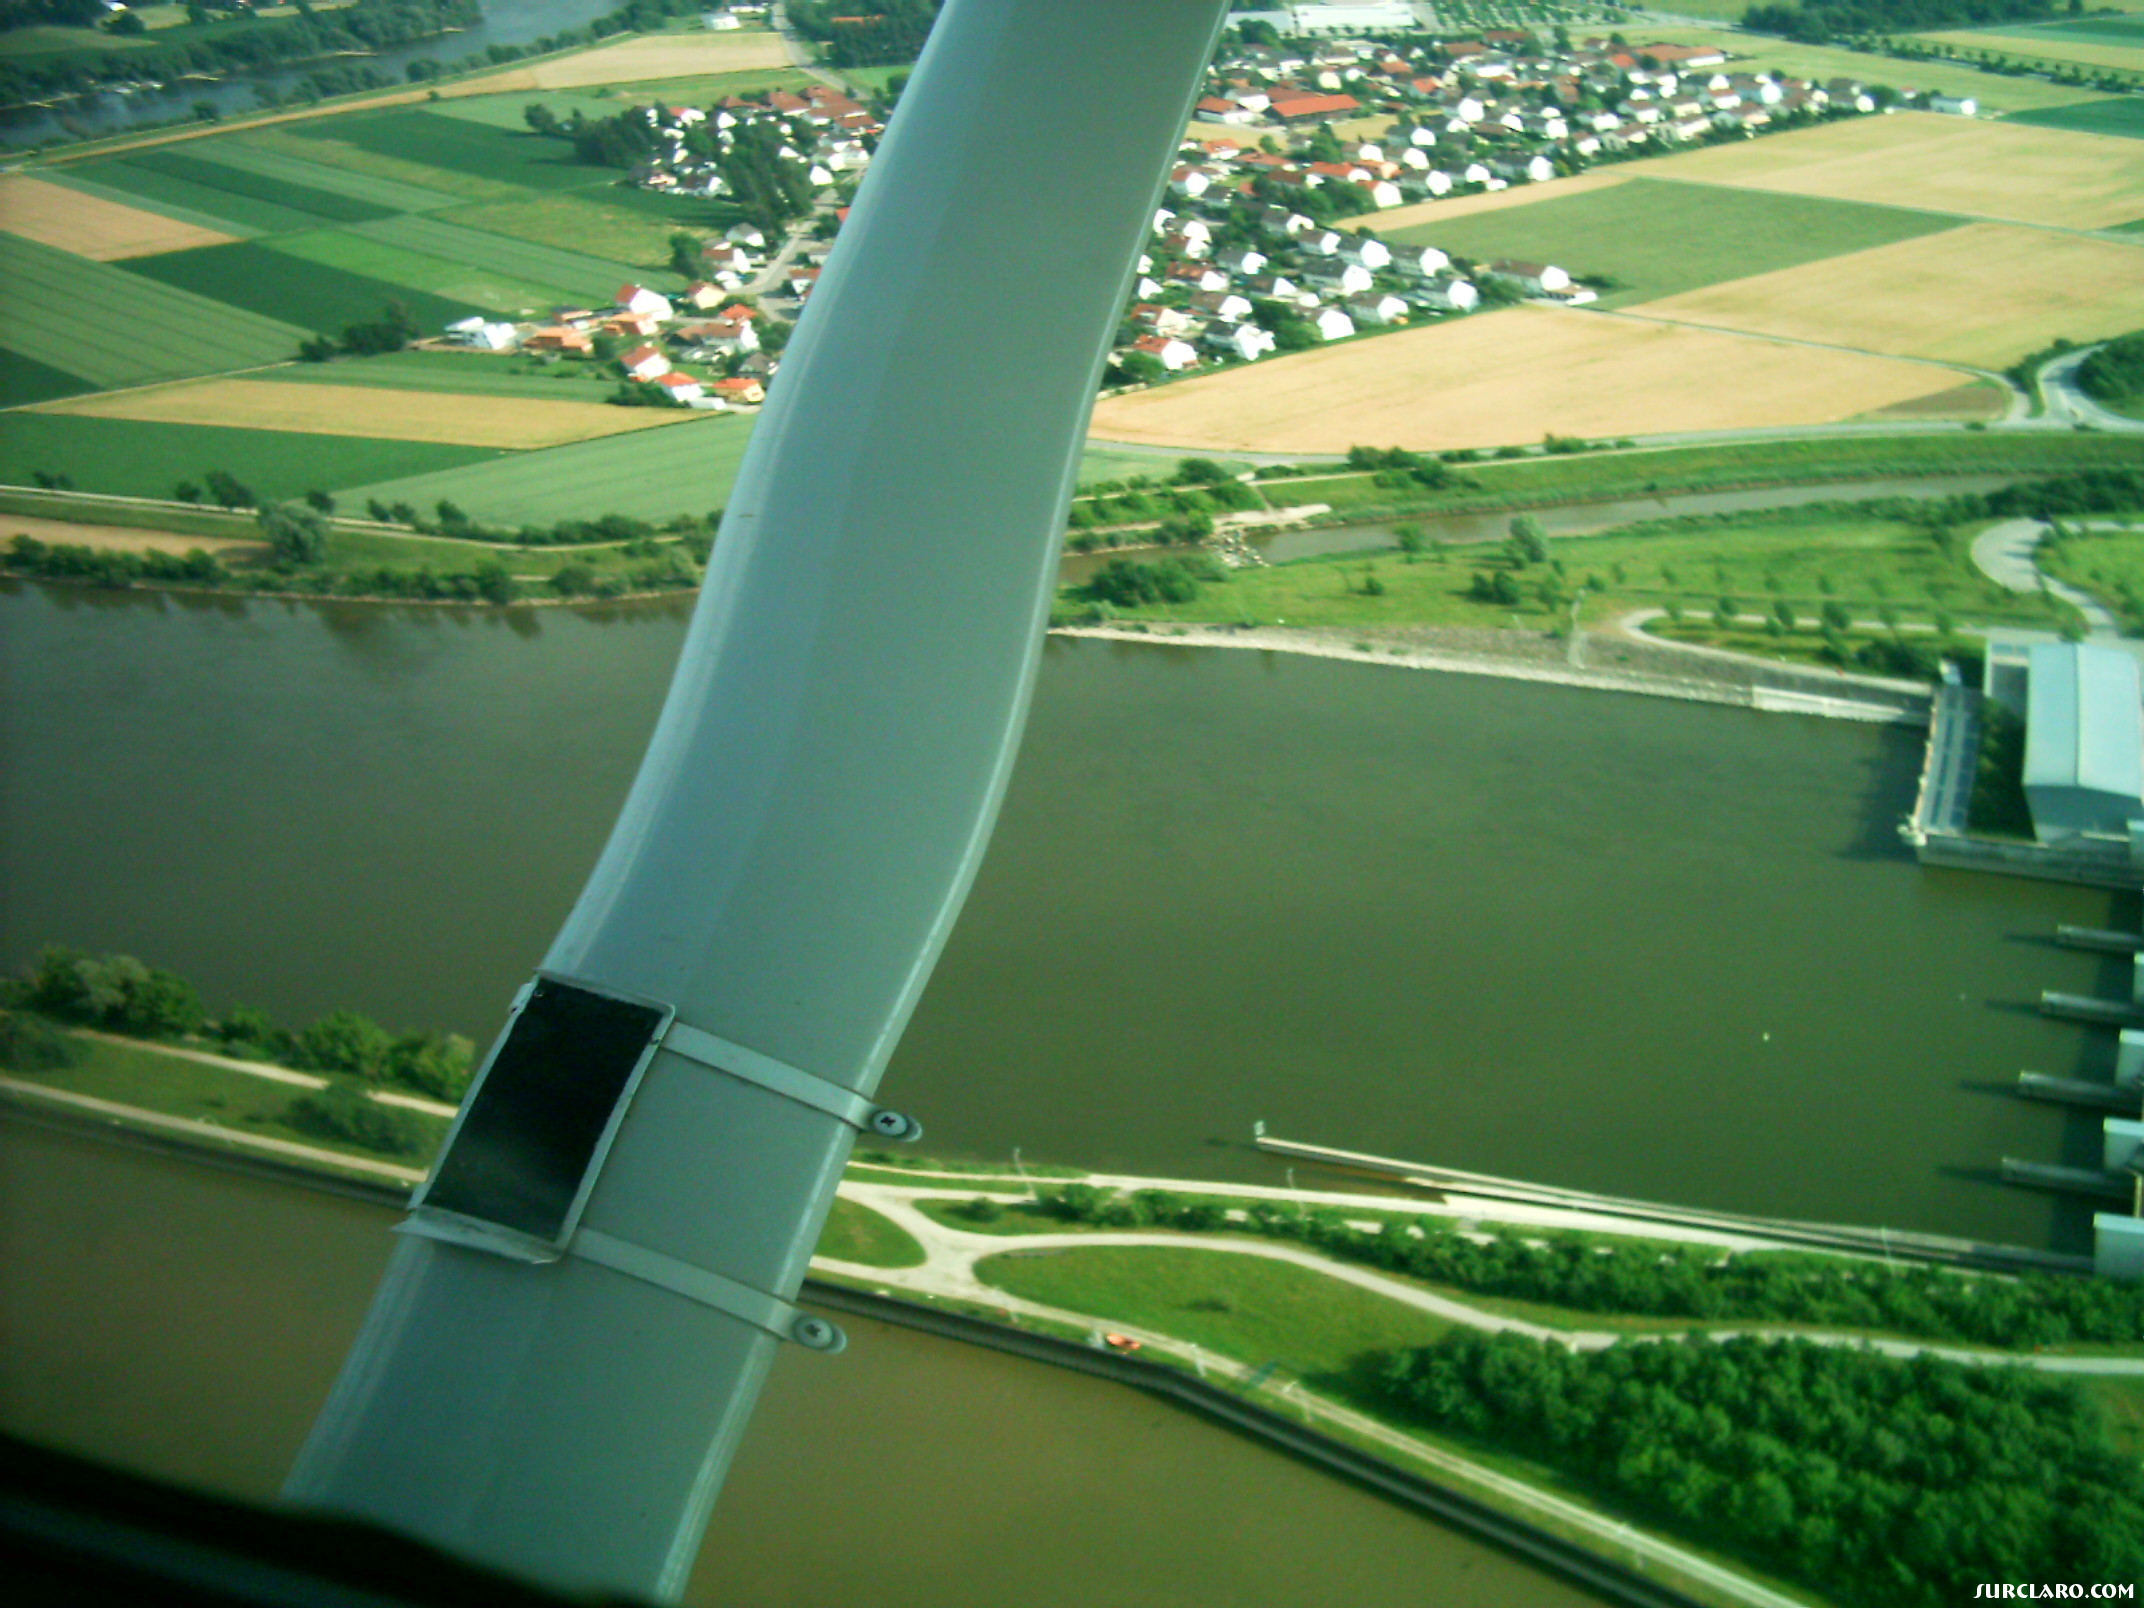 In Cessna 172